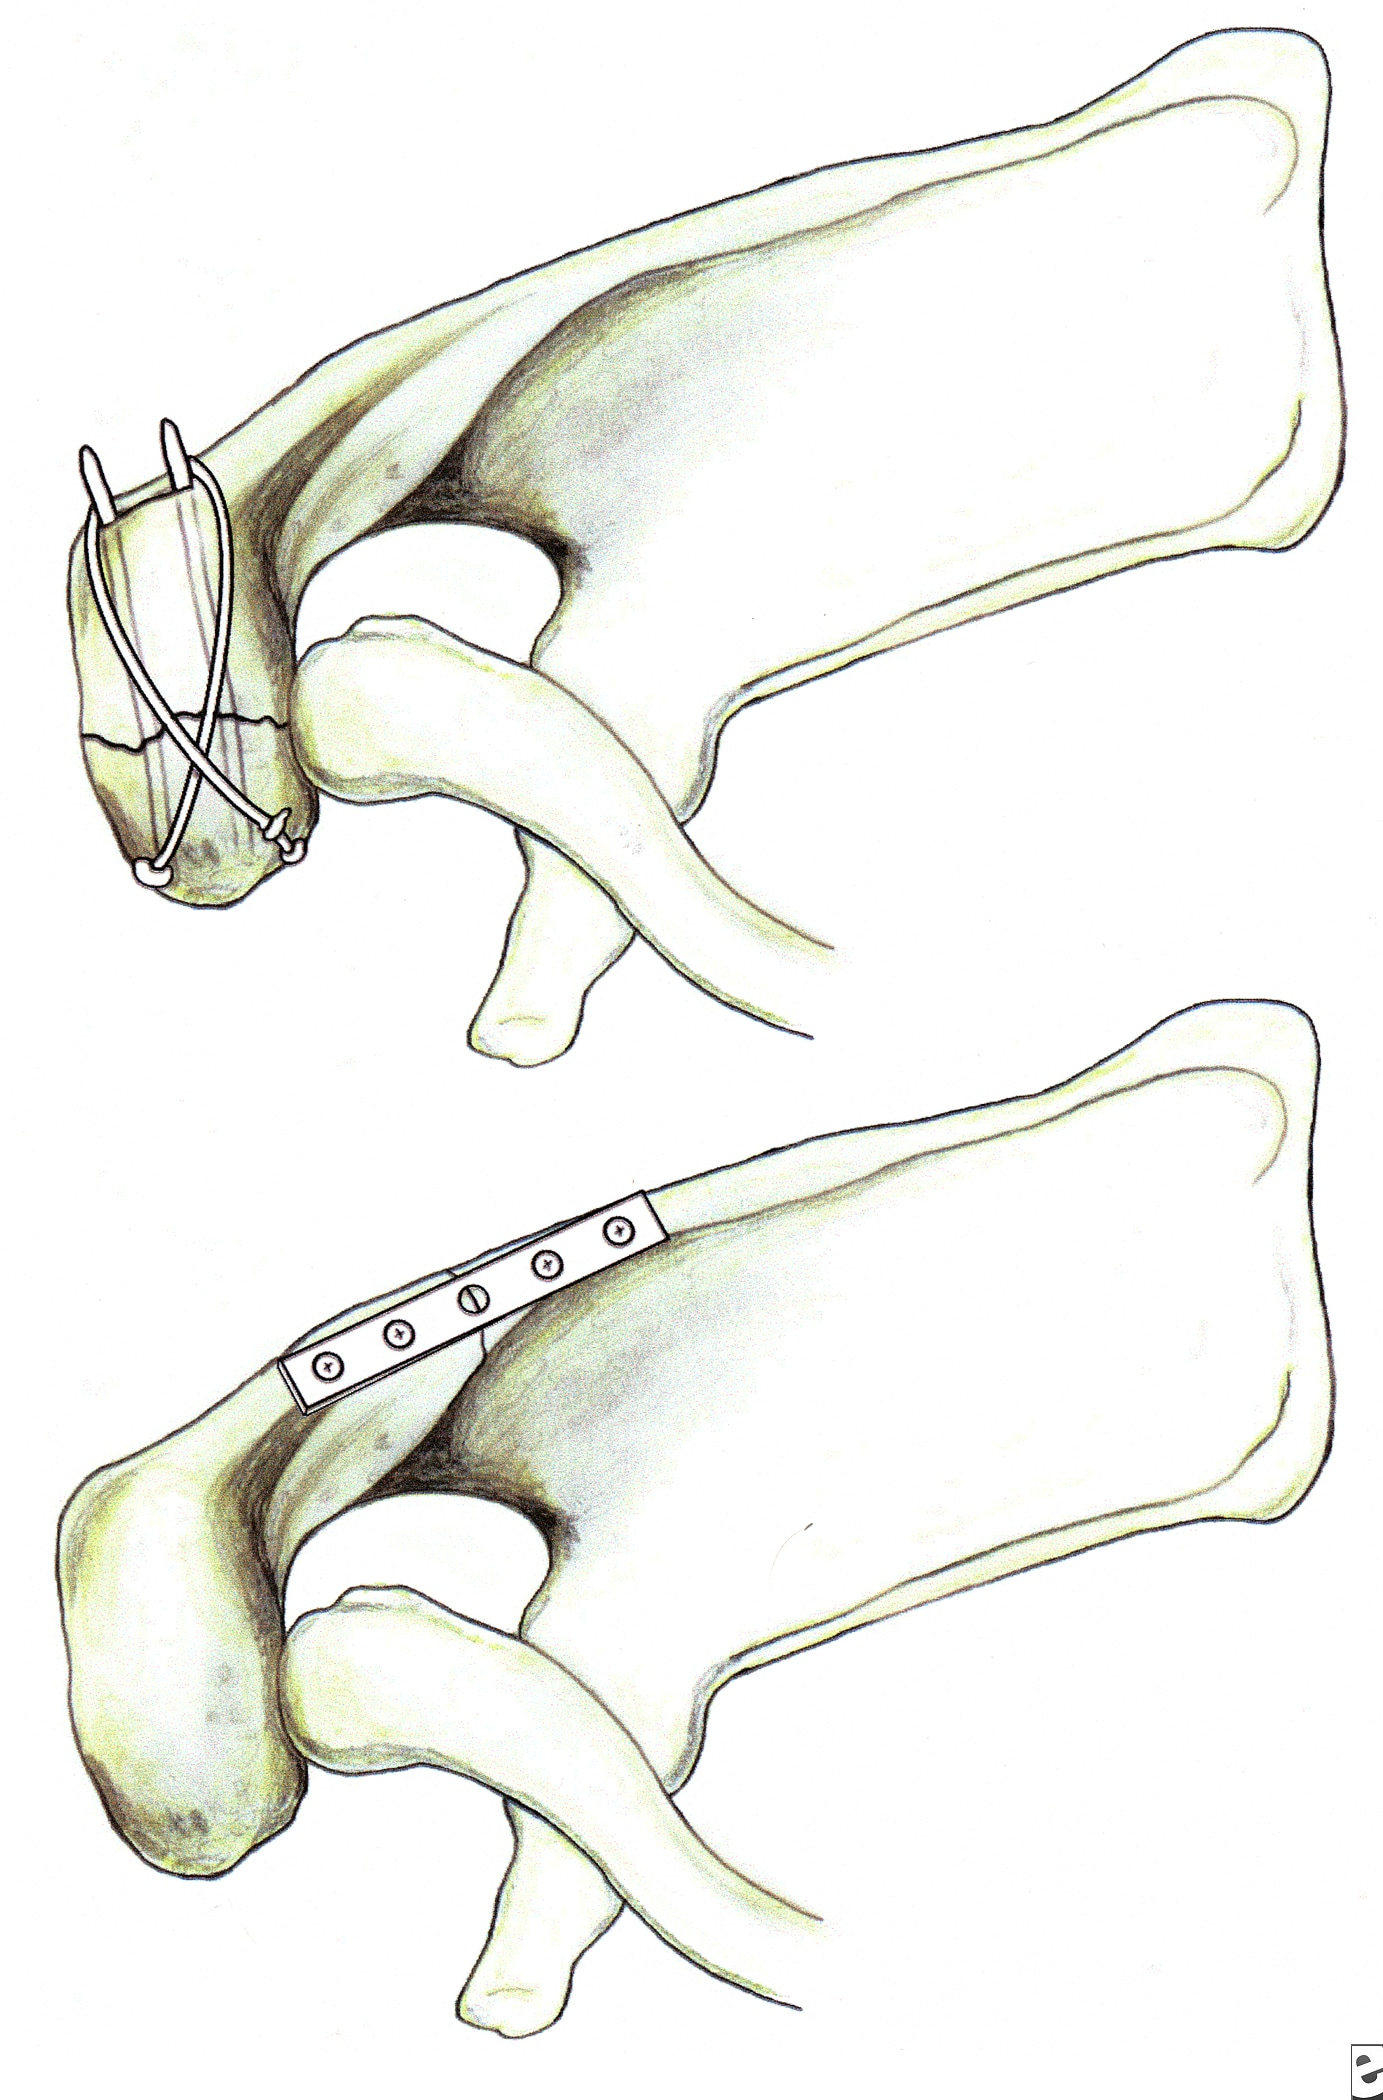 Fixation of acromion fractures. (A) tension band ...